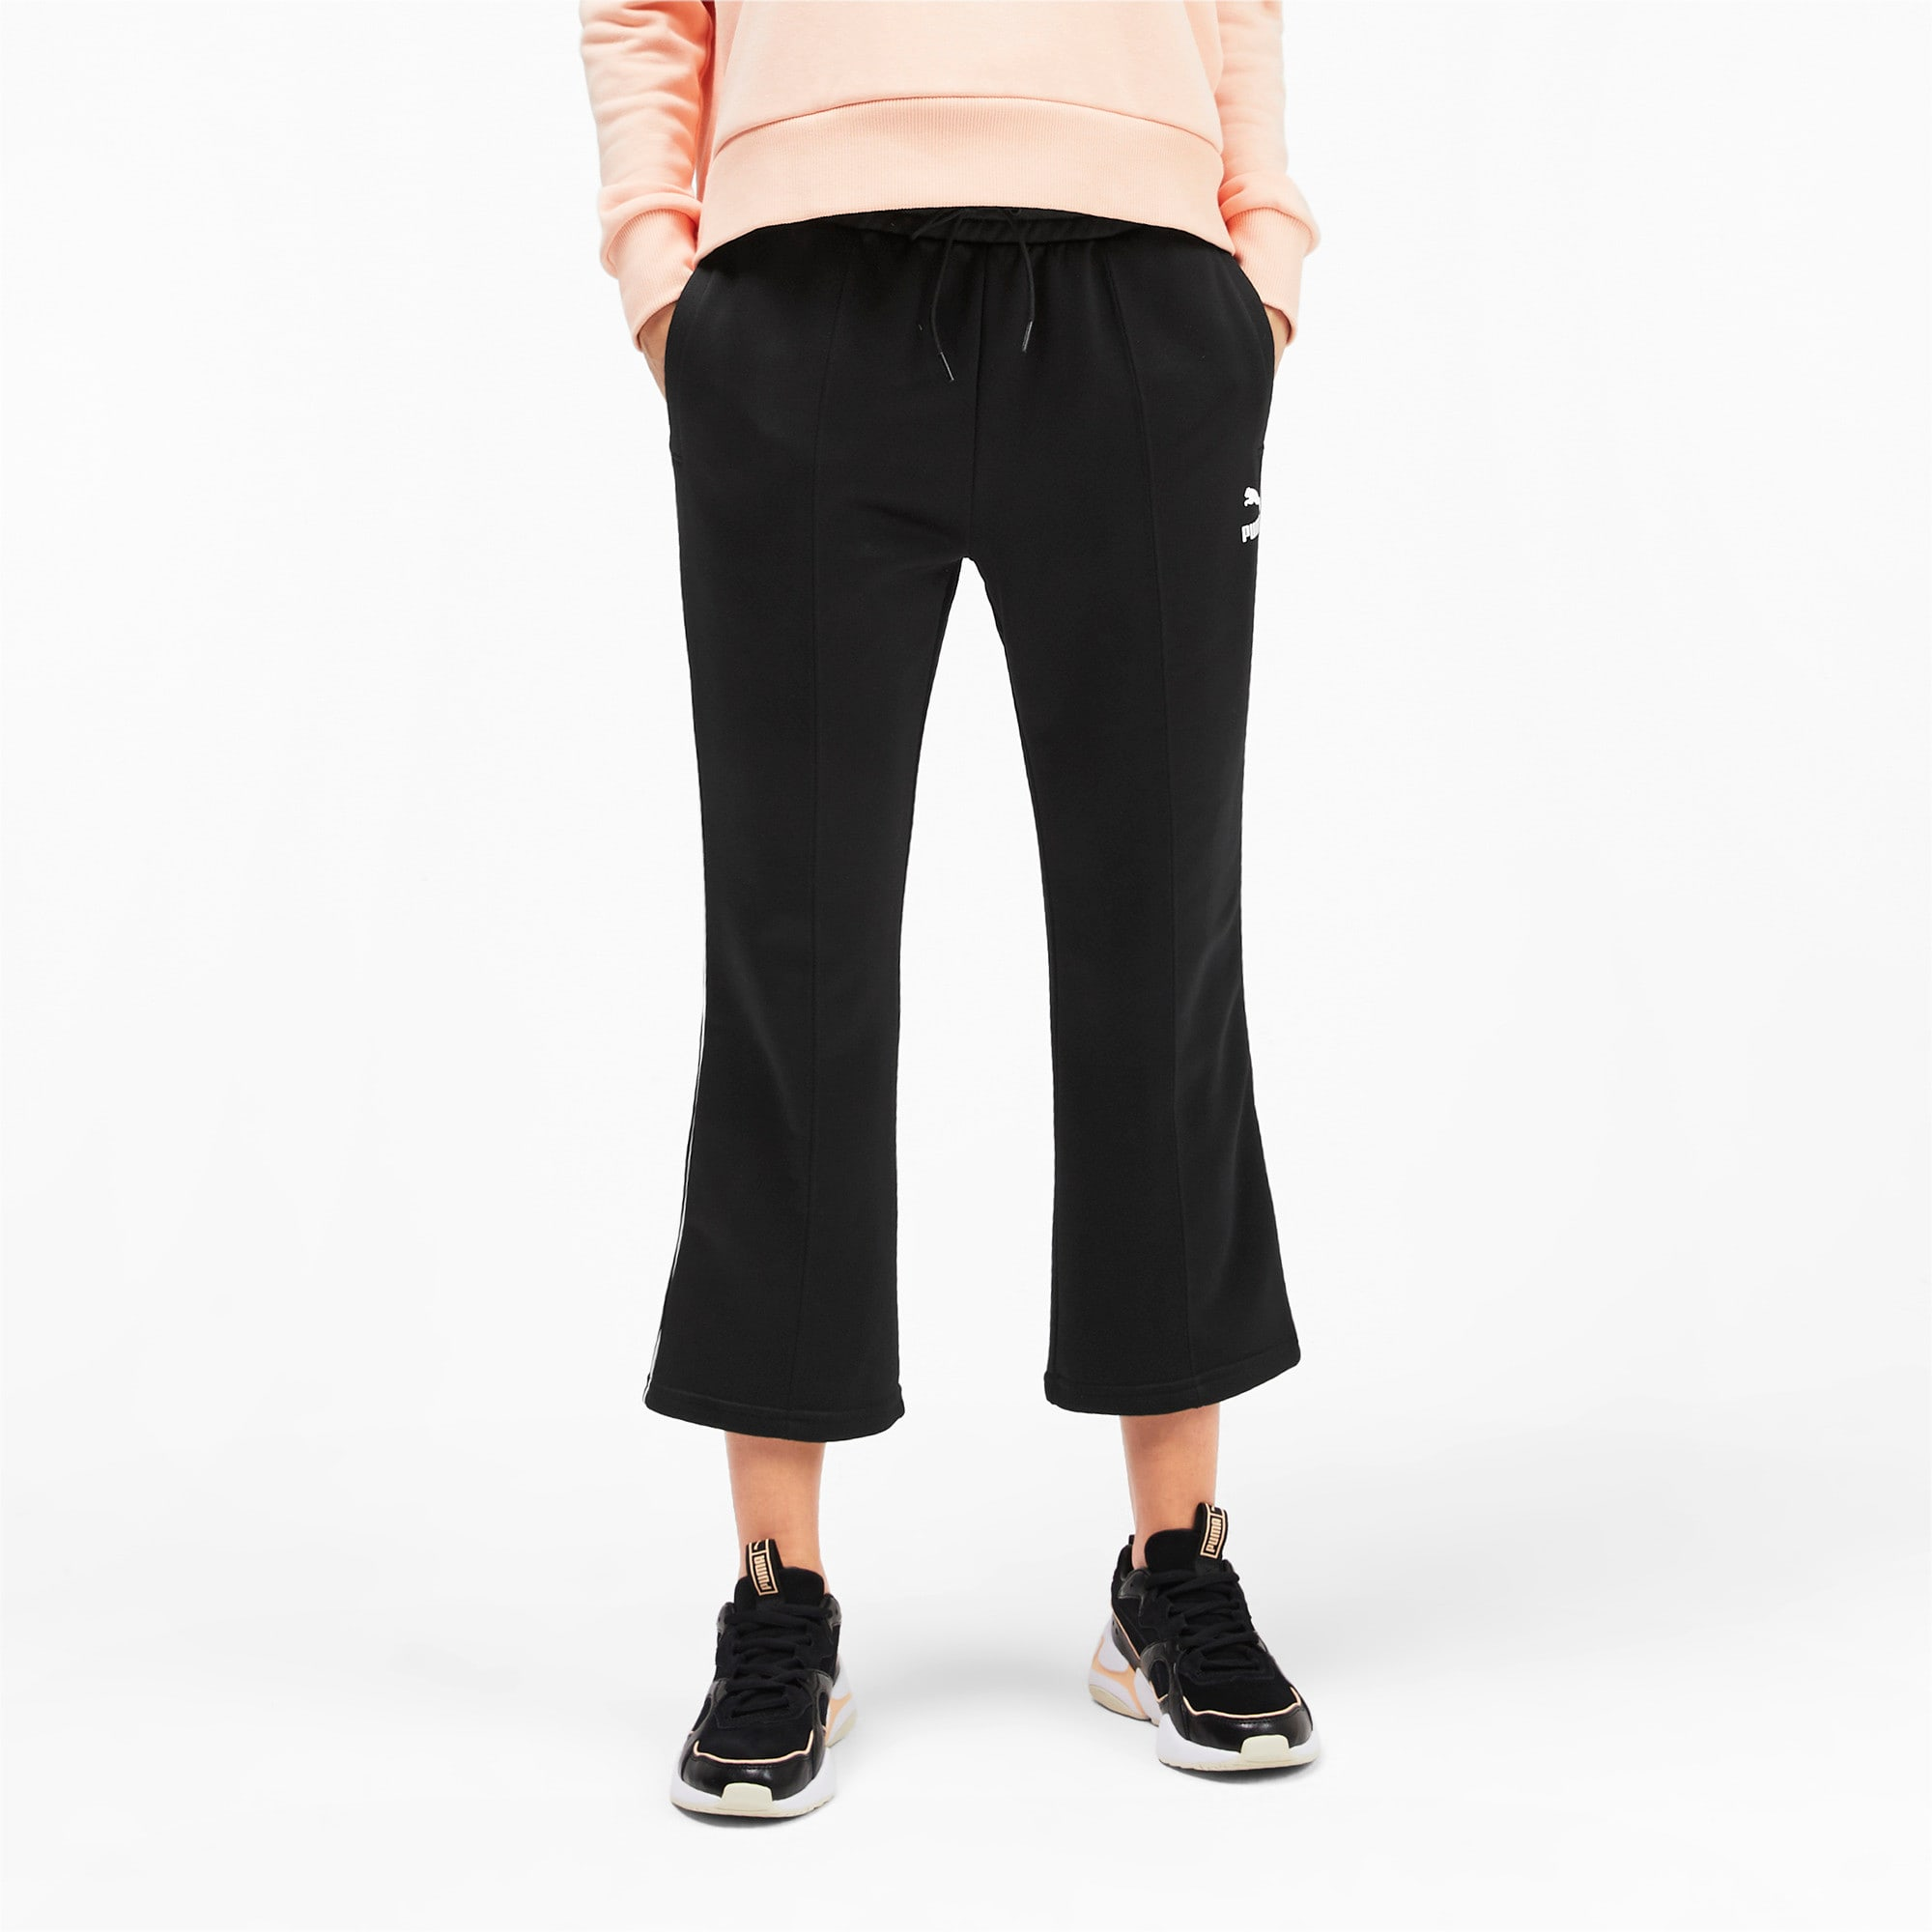 Thumbnail 1 of Classics Kick Flare Knitted Women's Pants, Puma Black, medium